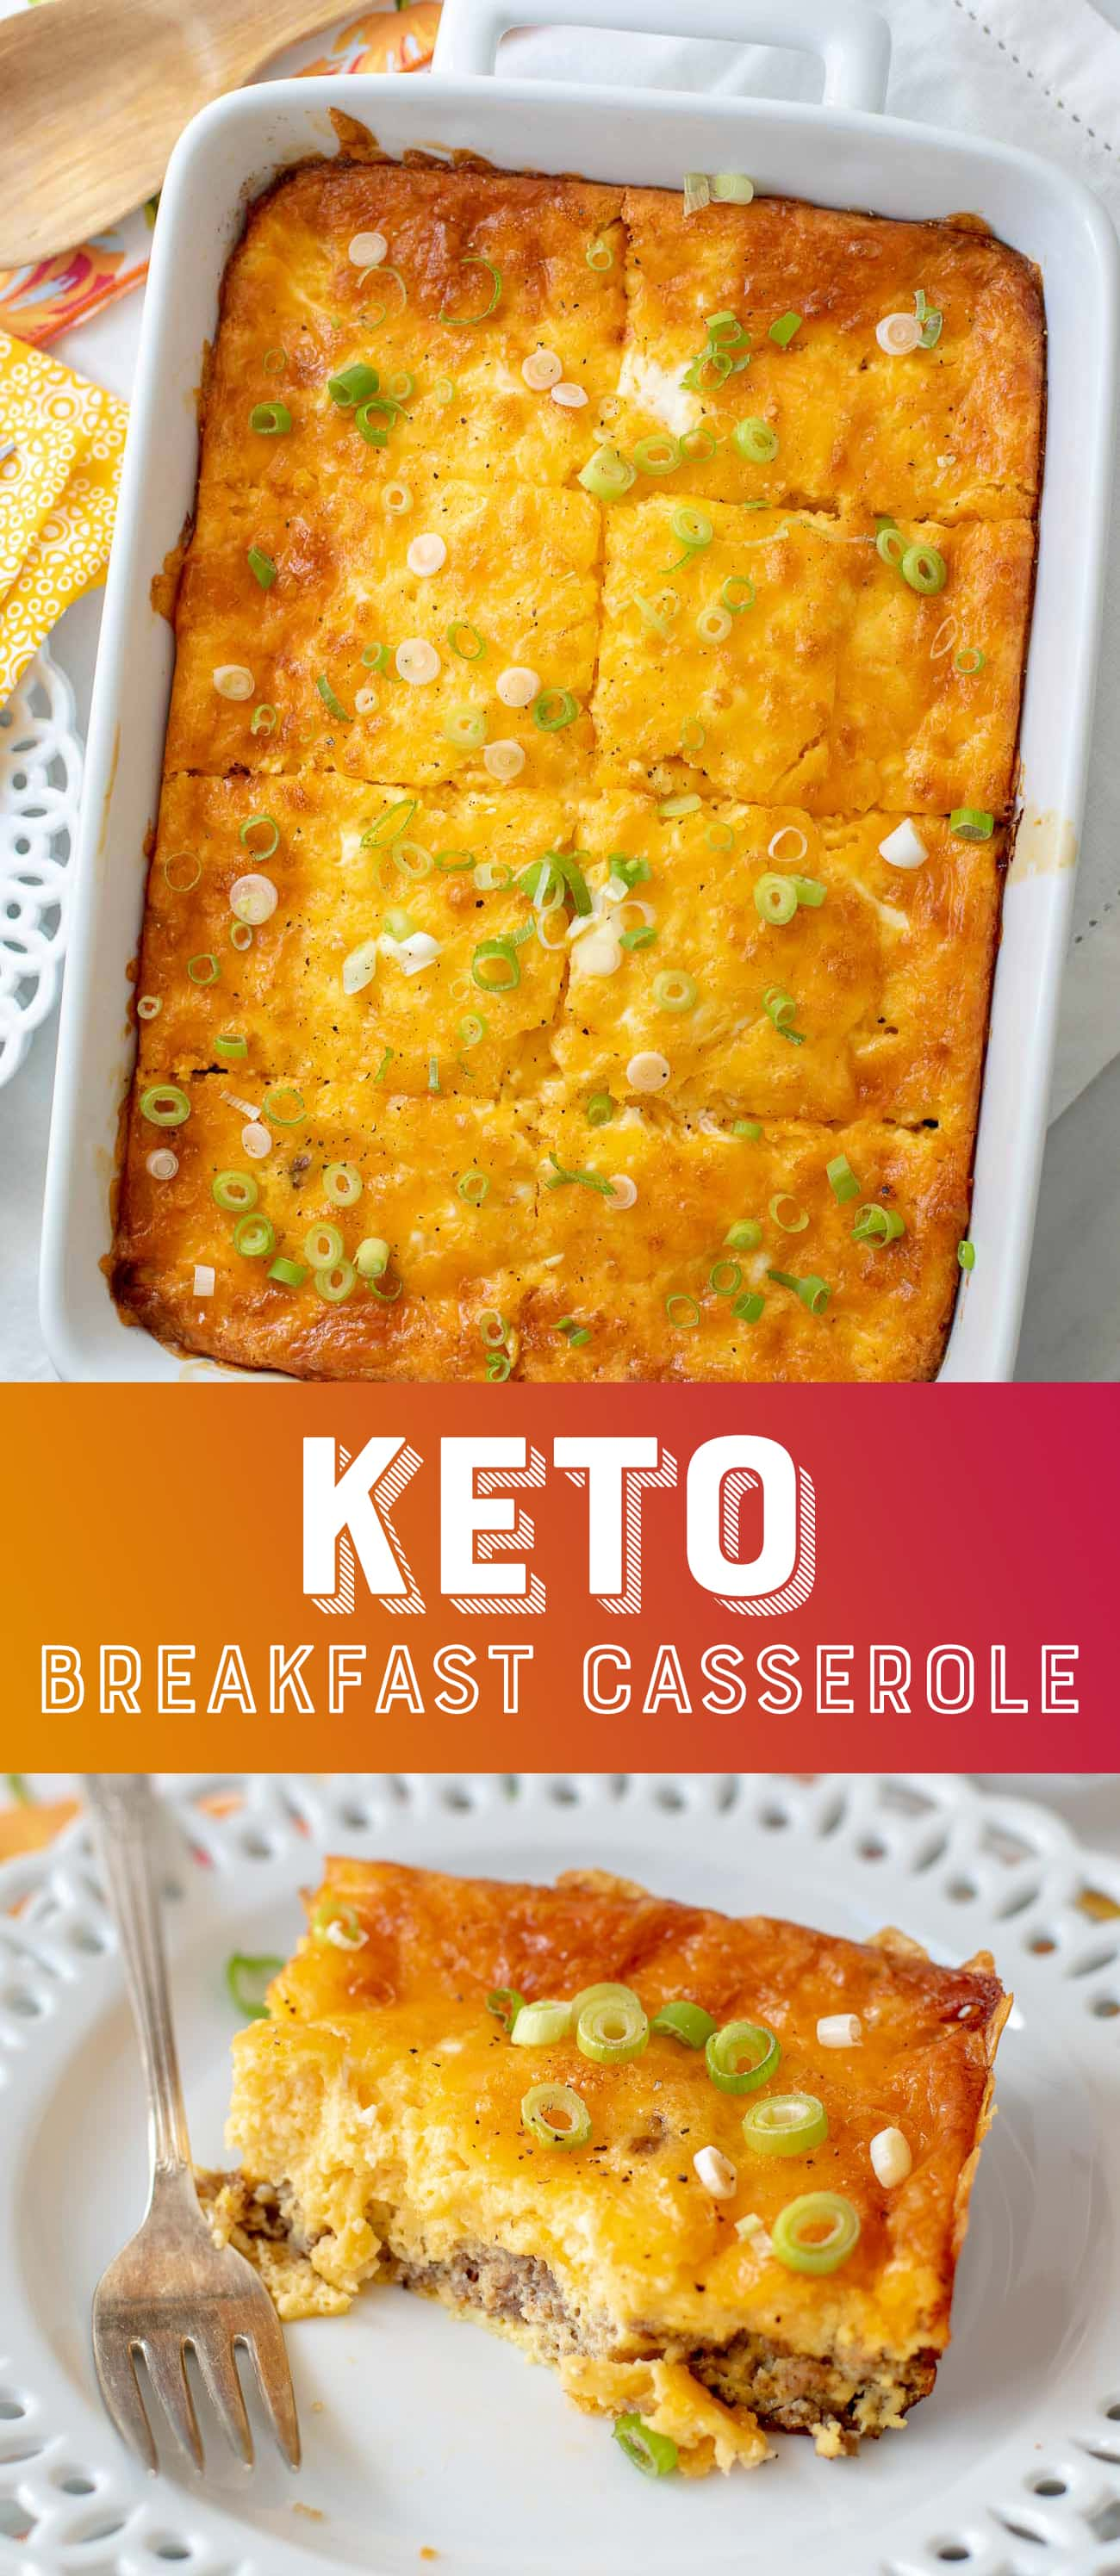 Keto Breakfast Casserole Recipe - Low Carb Egg Casserole - Breakfast Casserole - Ketogenic - Diet #Keto